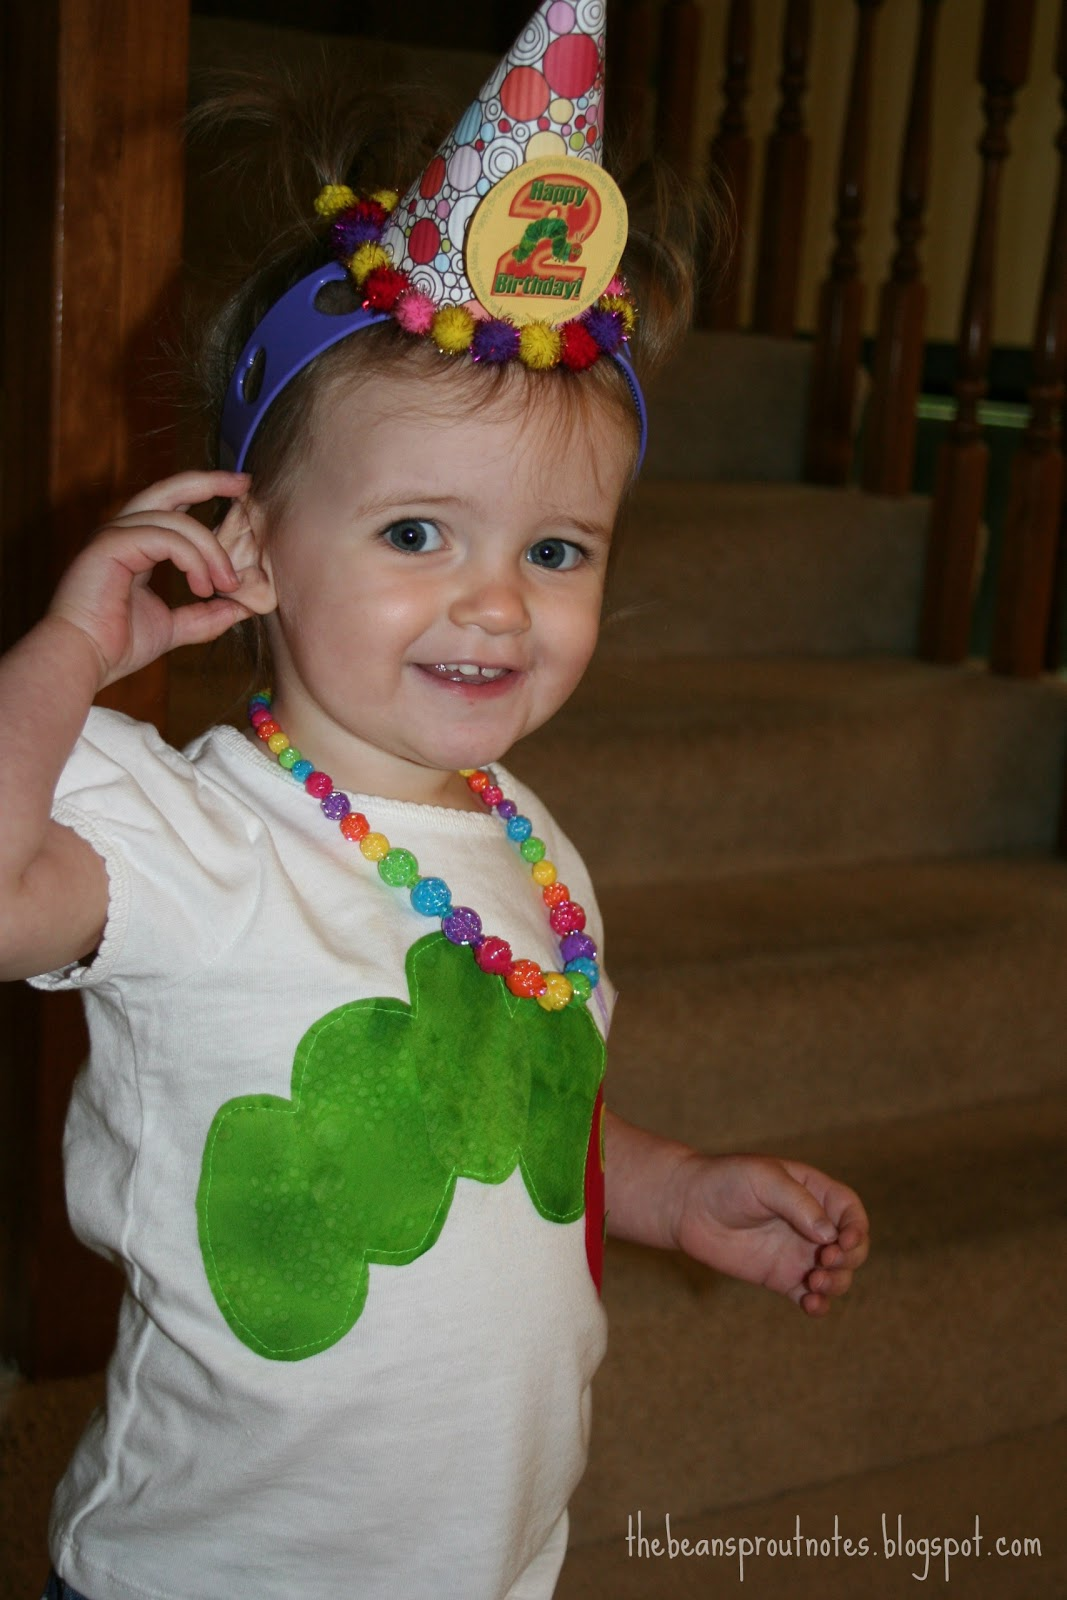 A Very Hungry Caterpillar 2nd Birthday Party